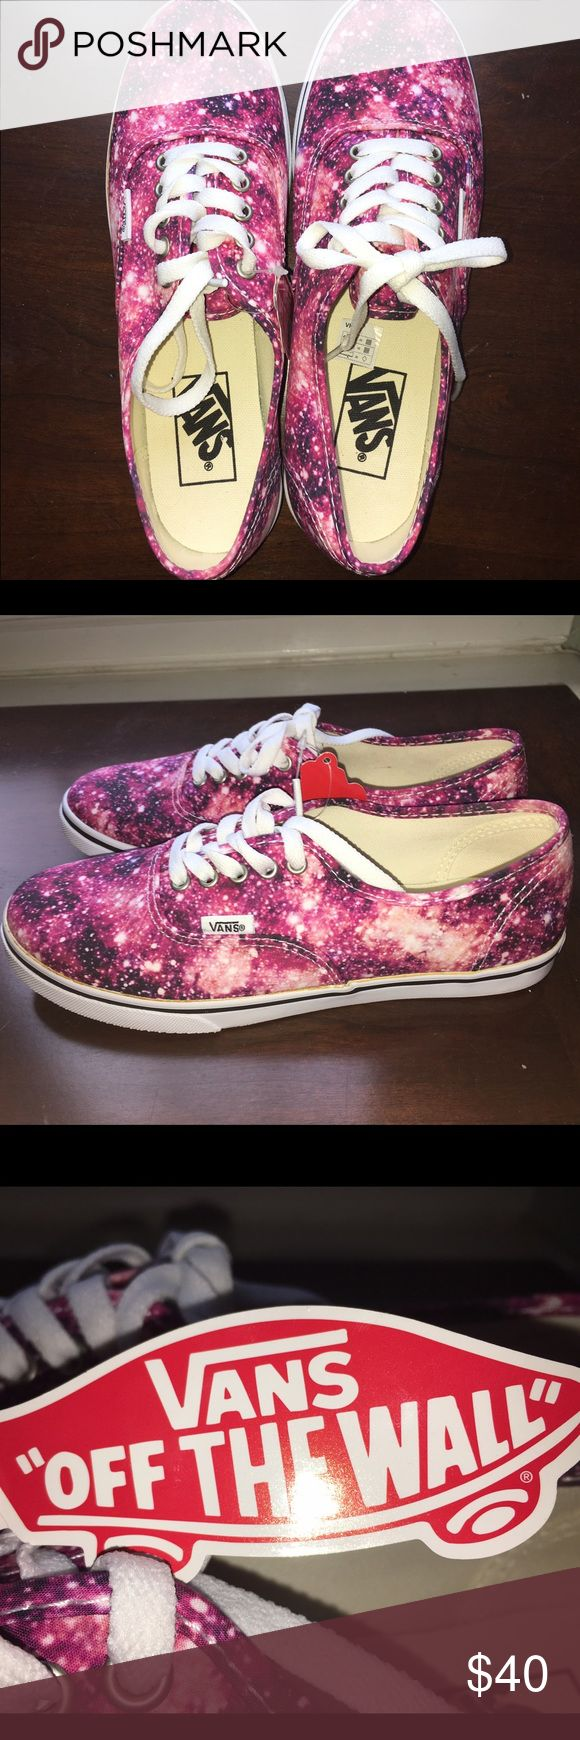 Cosmic Cloud Black/Coral Vans WILLING TO NEGOTIATE!  Brand New Cosmic Cloud Black/Coral Vans! In perfect condition...have never been worn! Vans Shoes